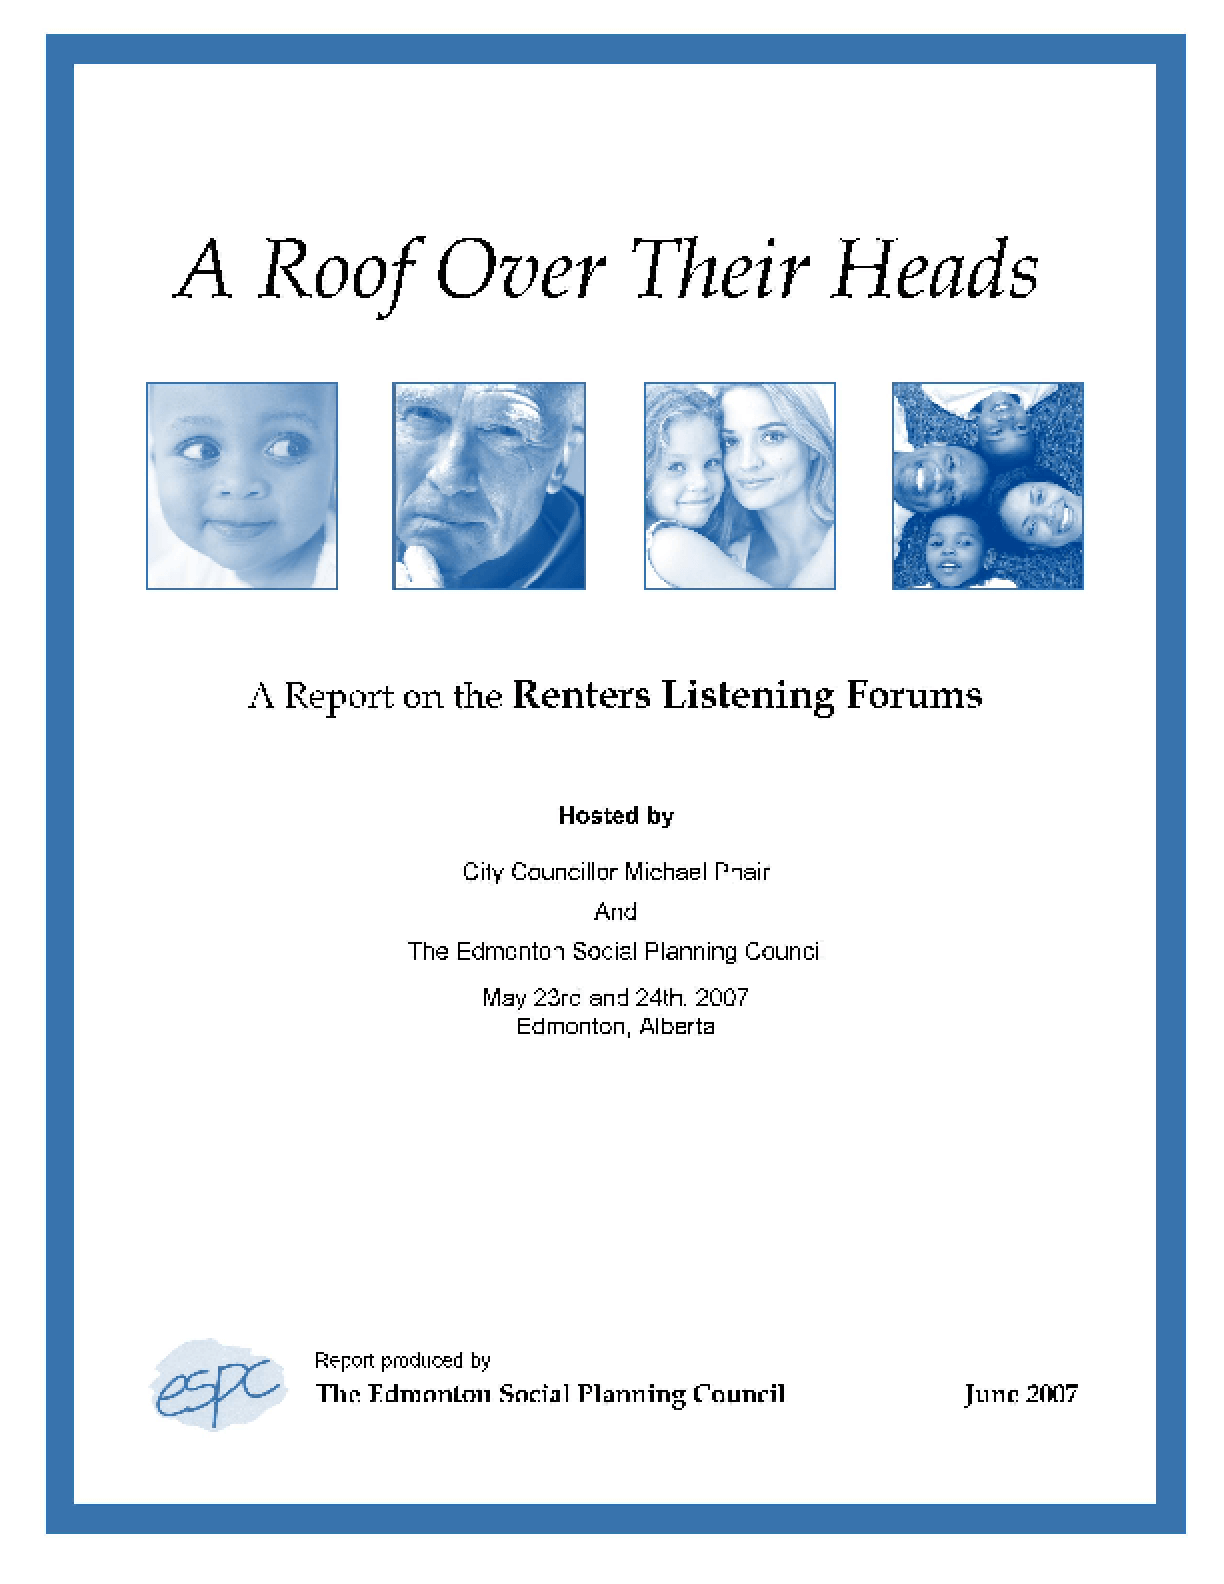 A Roof Over Their Heads: Results of the Renters Listening Forums